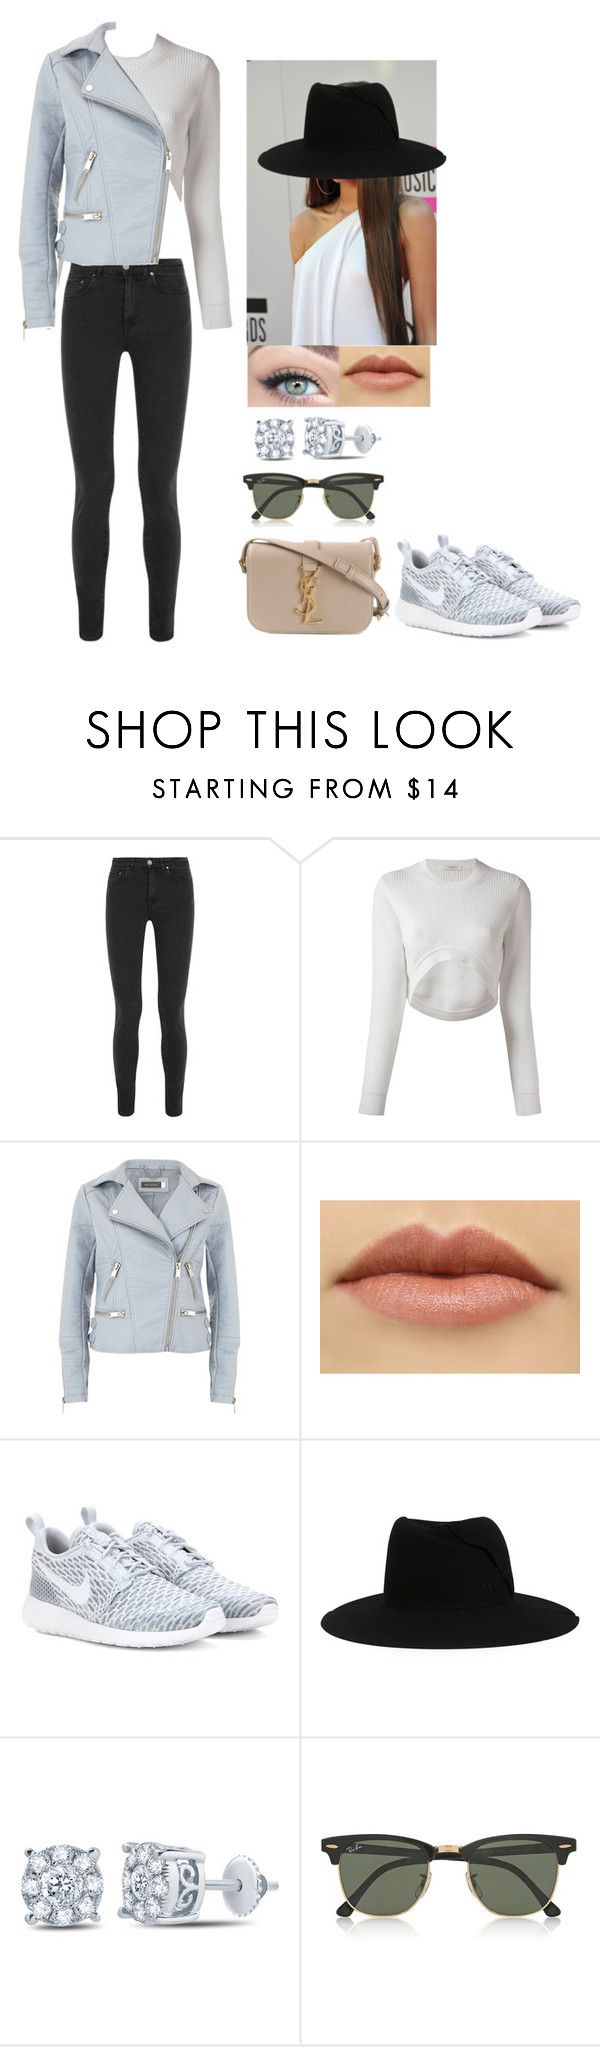 """Candids"" by teaand-kisses ❤ liked on Polyvore featuring Acne Studios, Givenchy, Mint Velvet, NIKE, Coleman, Maison Michel, Ray-Ban, Yves Saint Laurent, women's clothing and women"